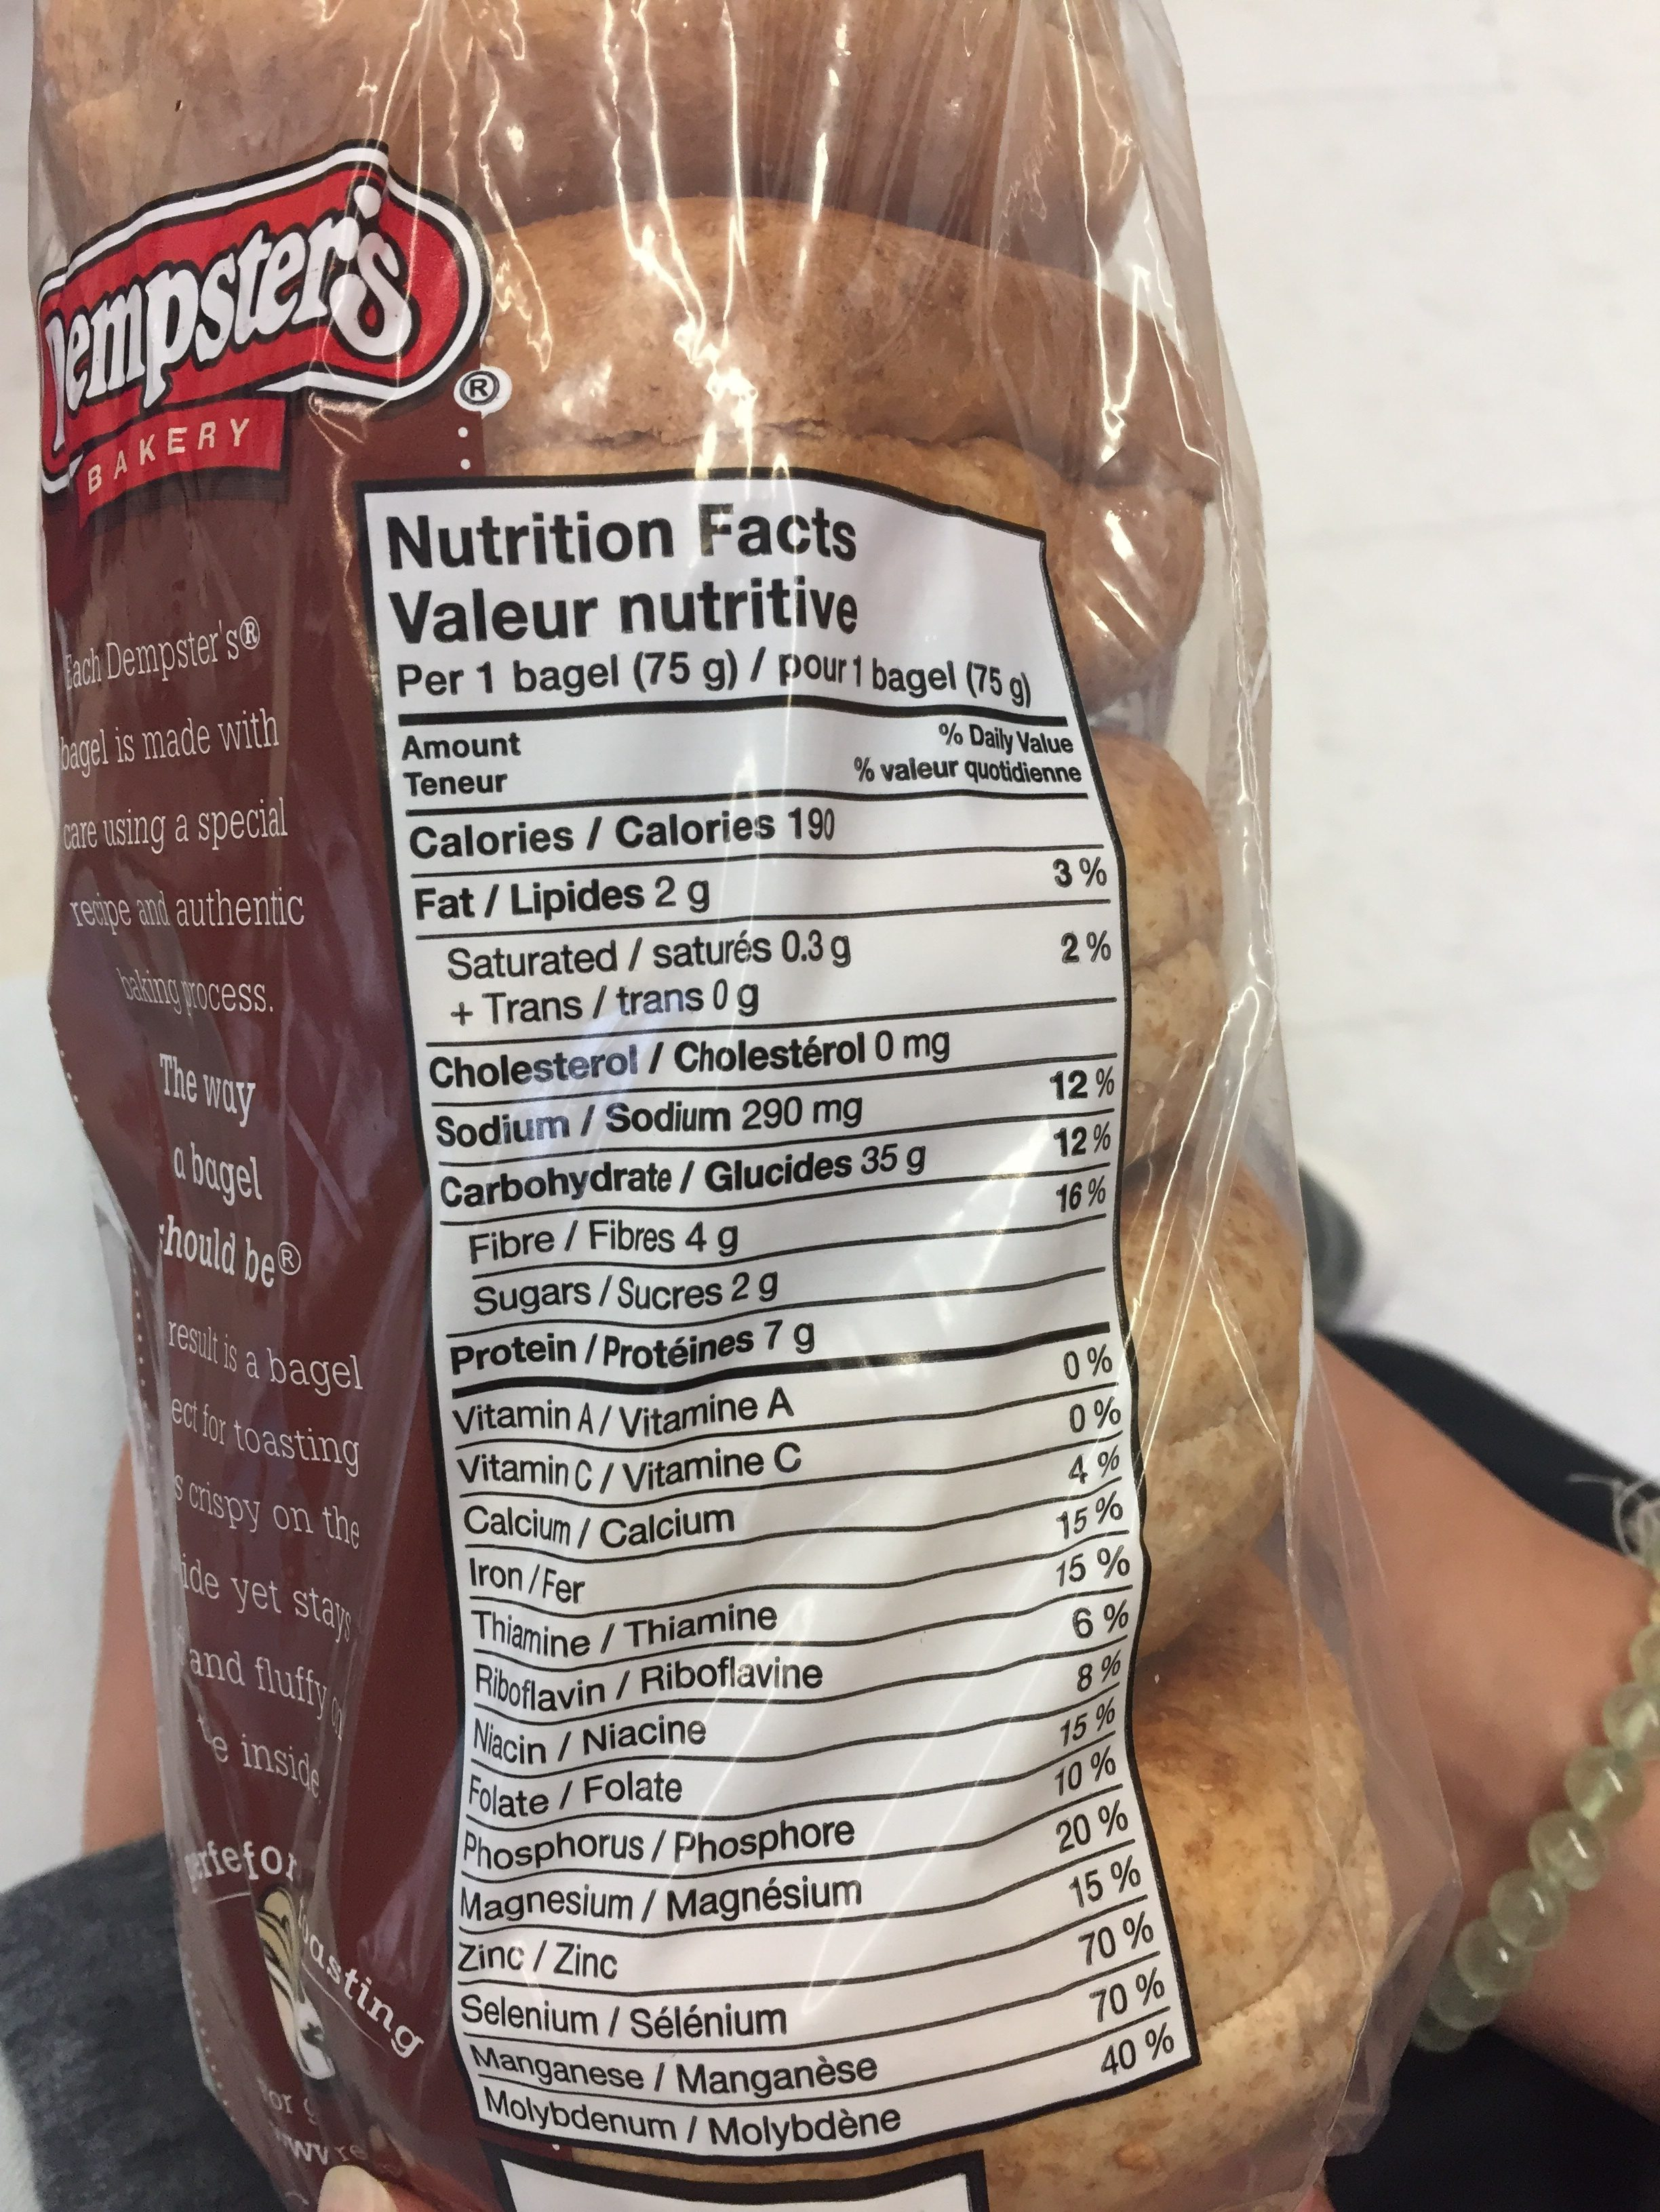 Bagel Thins Nutrition Label | Besto Blog |Whole Wheat Bagel Nutrition Facts